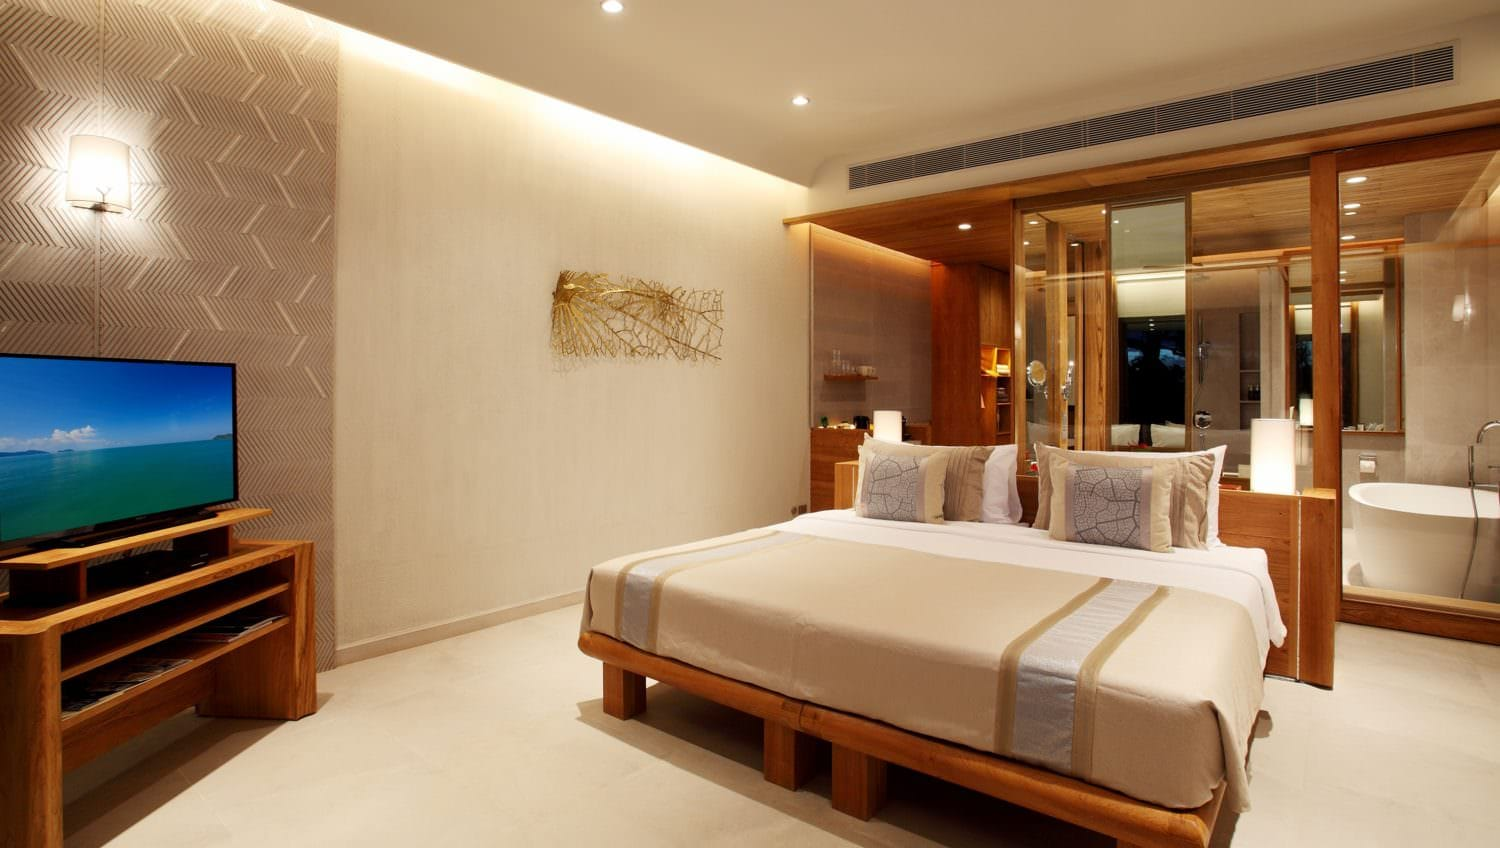 4-Pool-Suite-West-with-Private-Pool-Sri-Panwa-Luxury-Hotel-Phuket